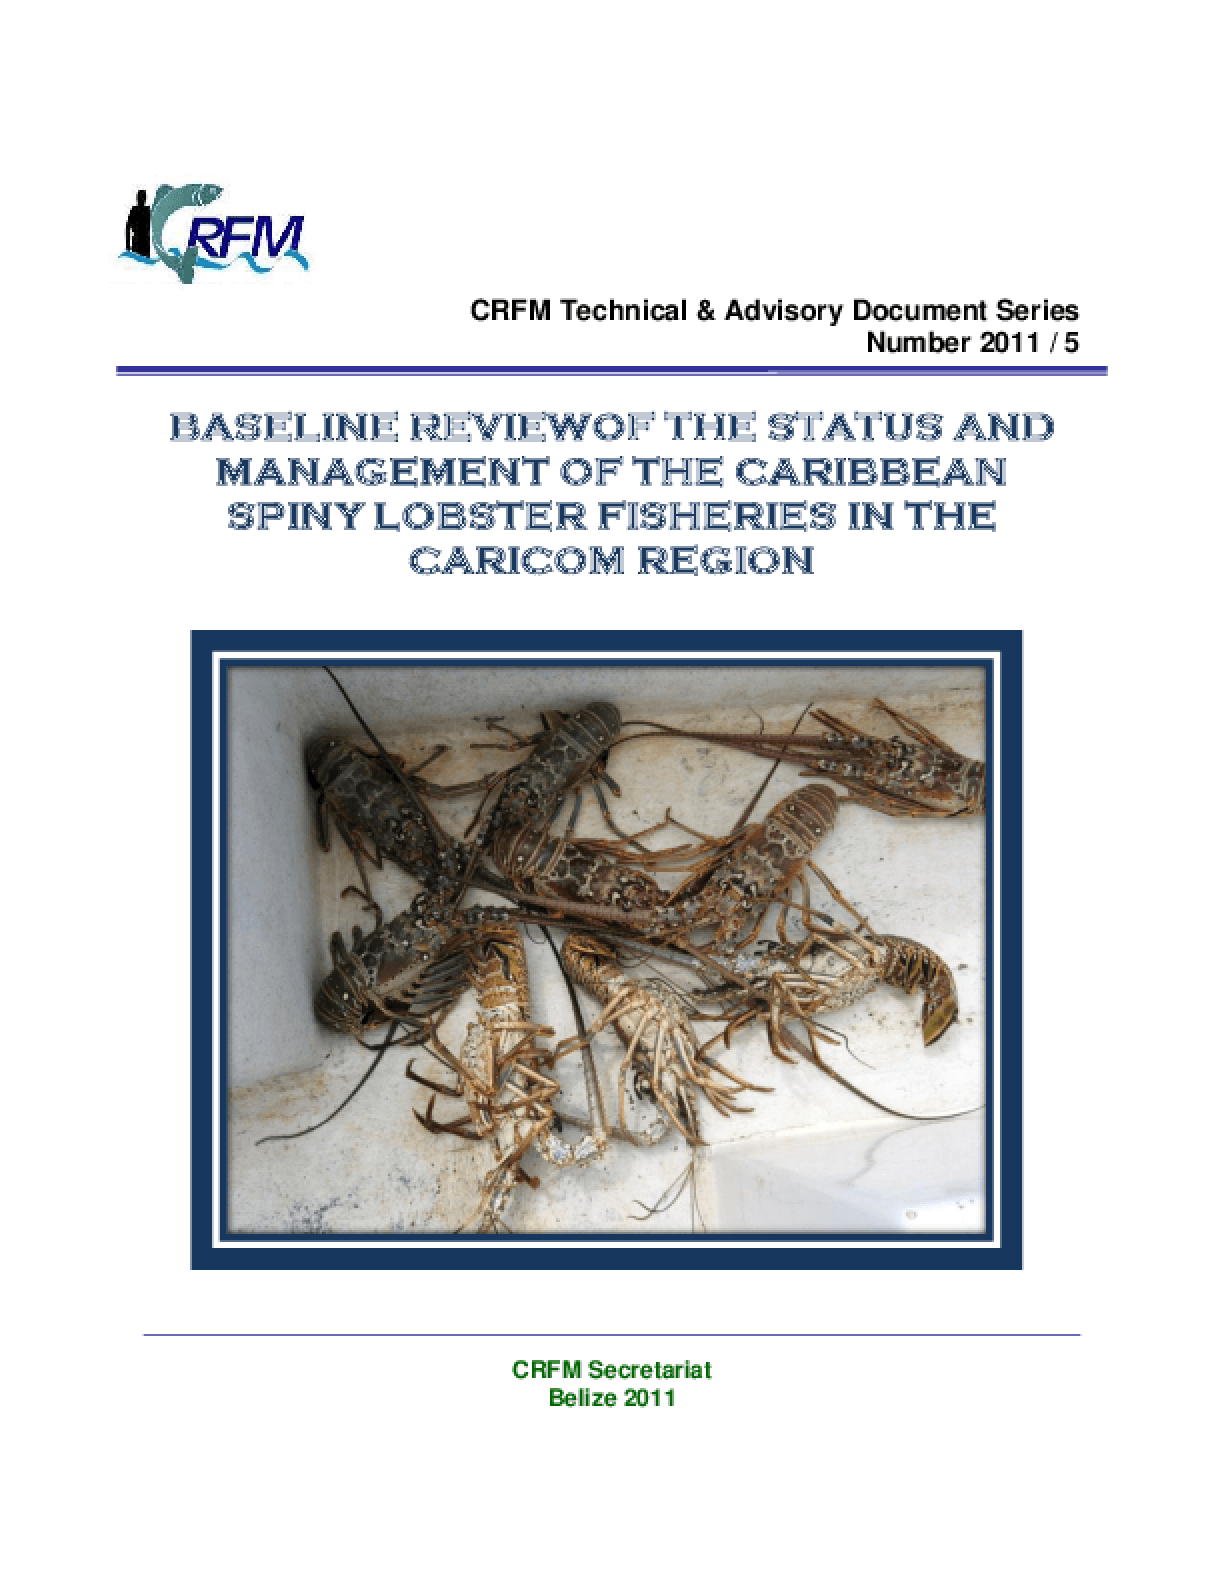 Baseline Review of the Status and Management of the Caribbean Spiny Lobster Fisheries in the Caricom Region